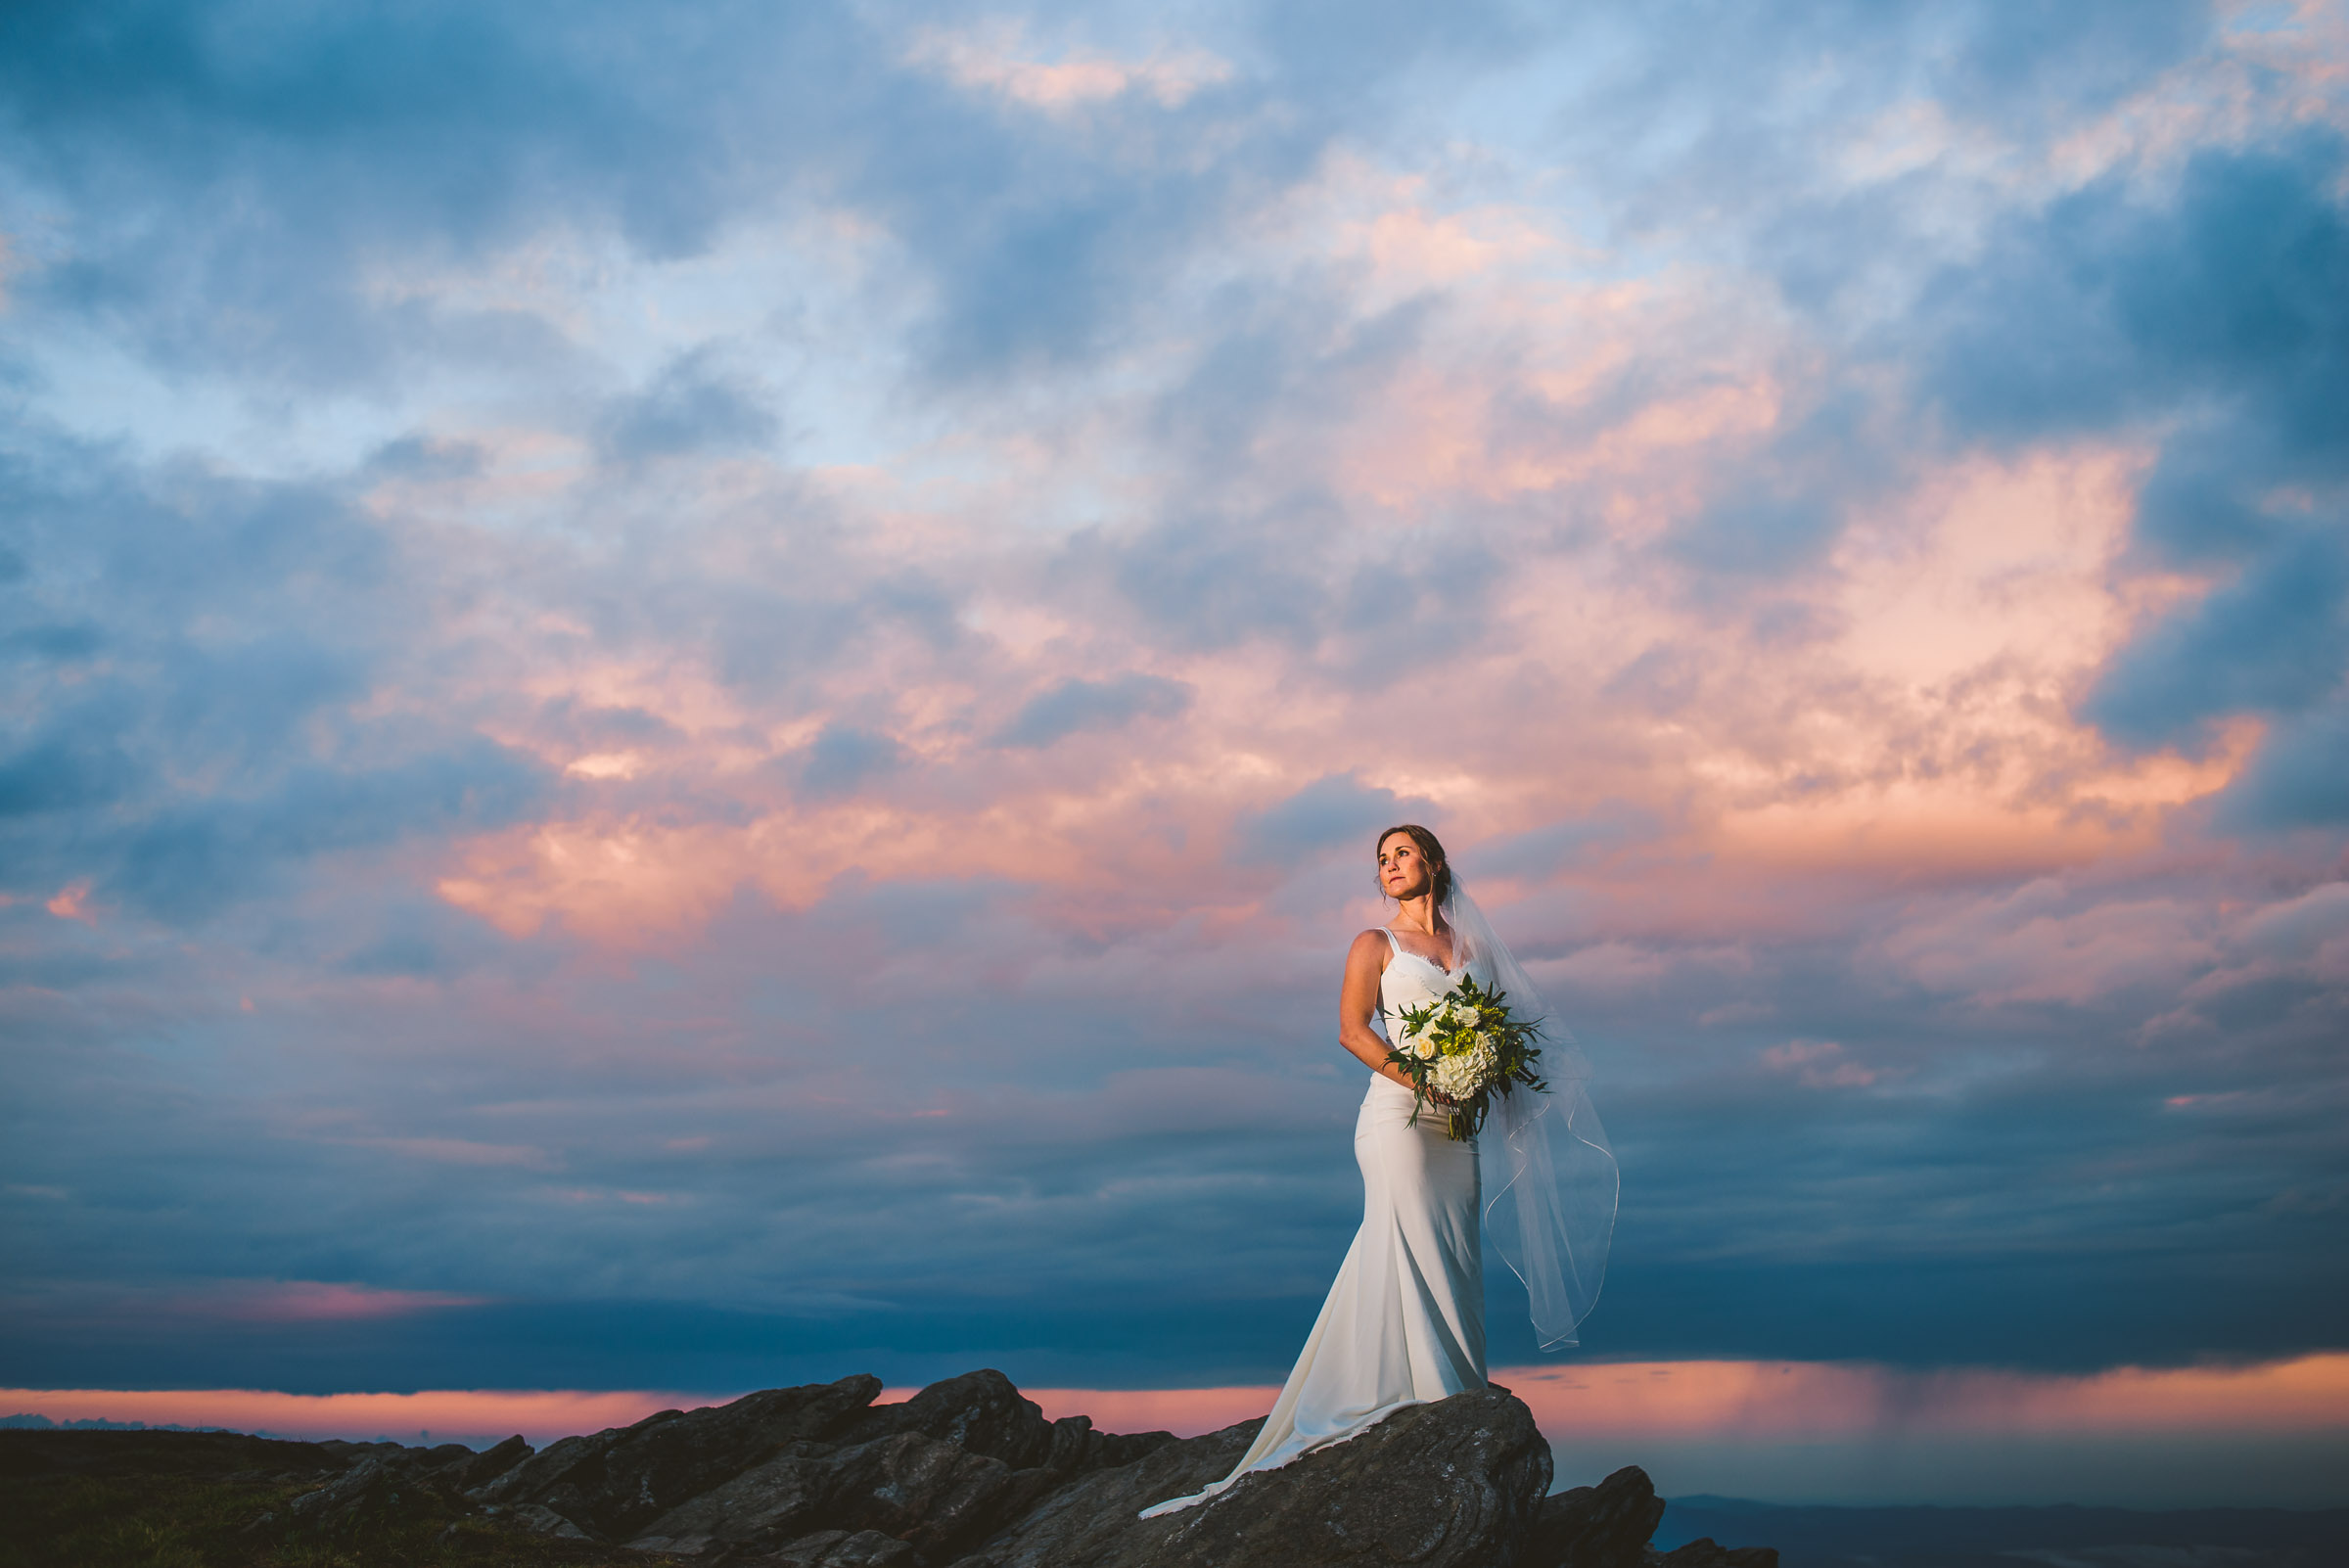 Gorgeous bride on a mountaintop with a sunset behind her